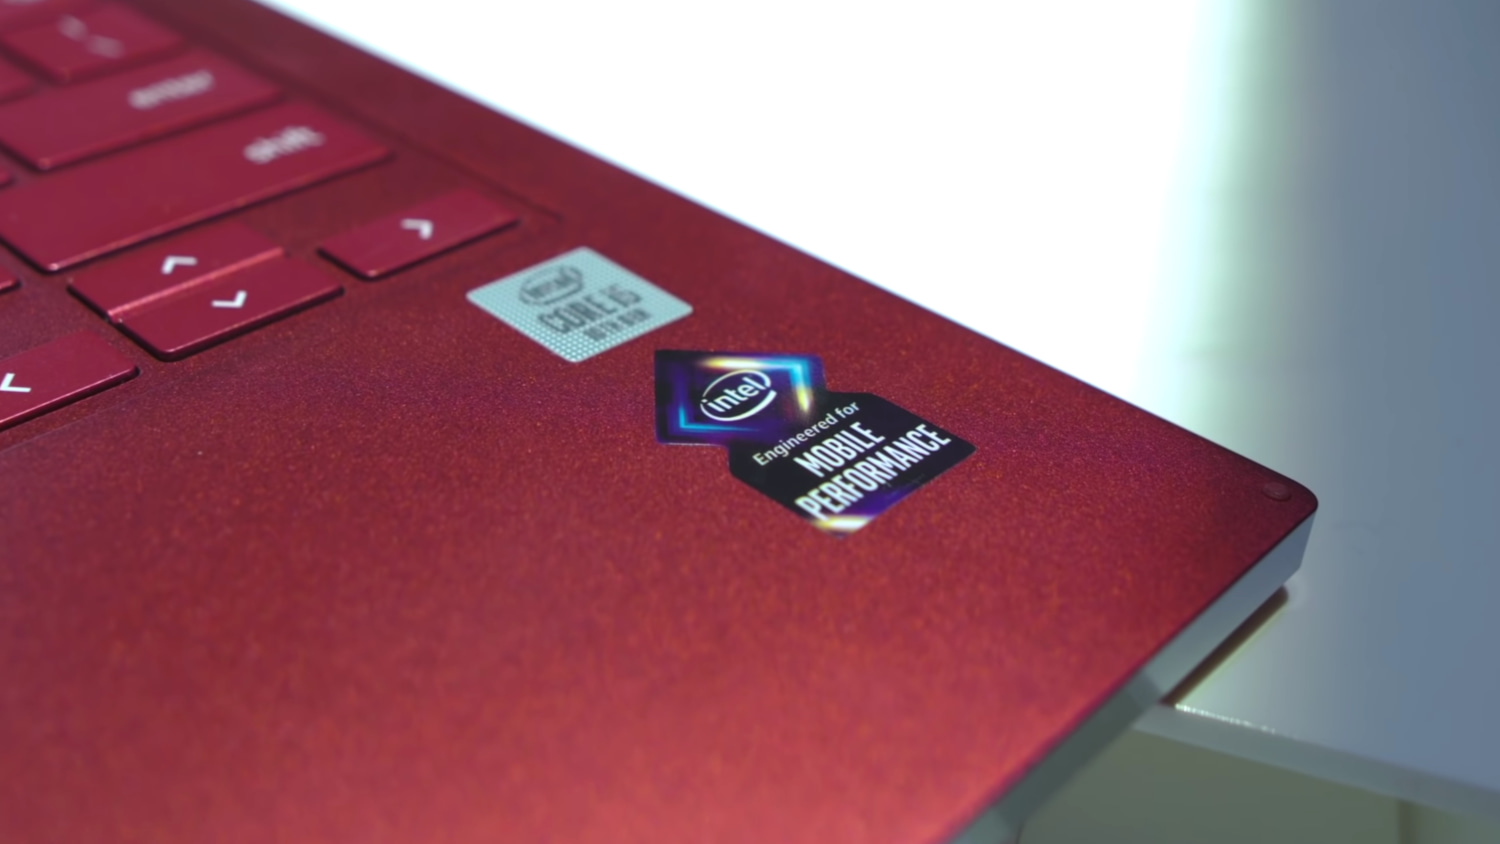 'Mushu' is a new 10th-gen Intel Chromebook that may get Project Athena certification